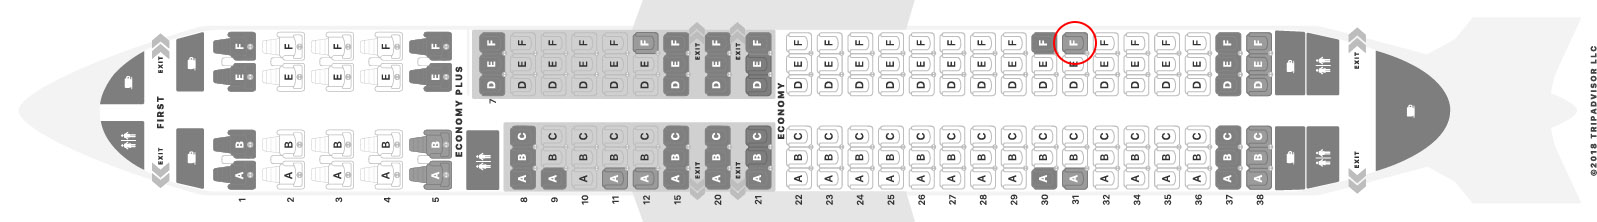 United Airlines 737-900/ER seat map